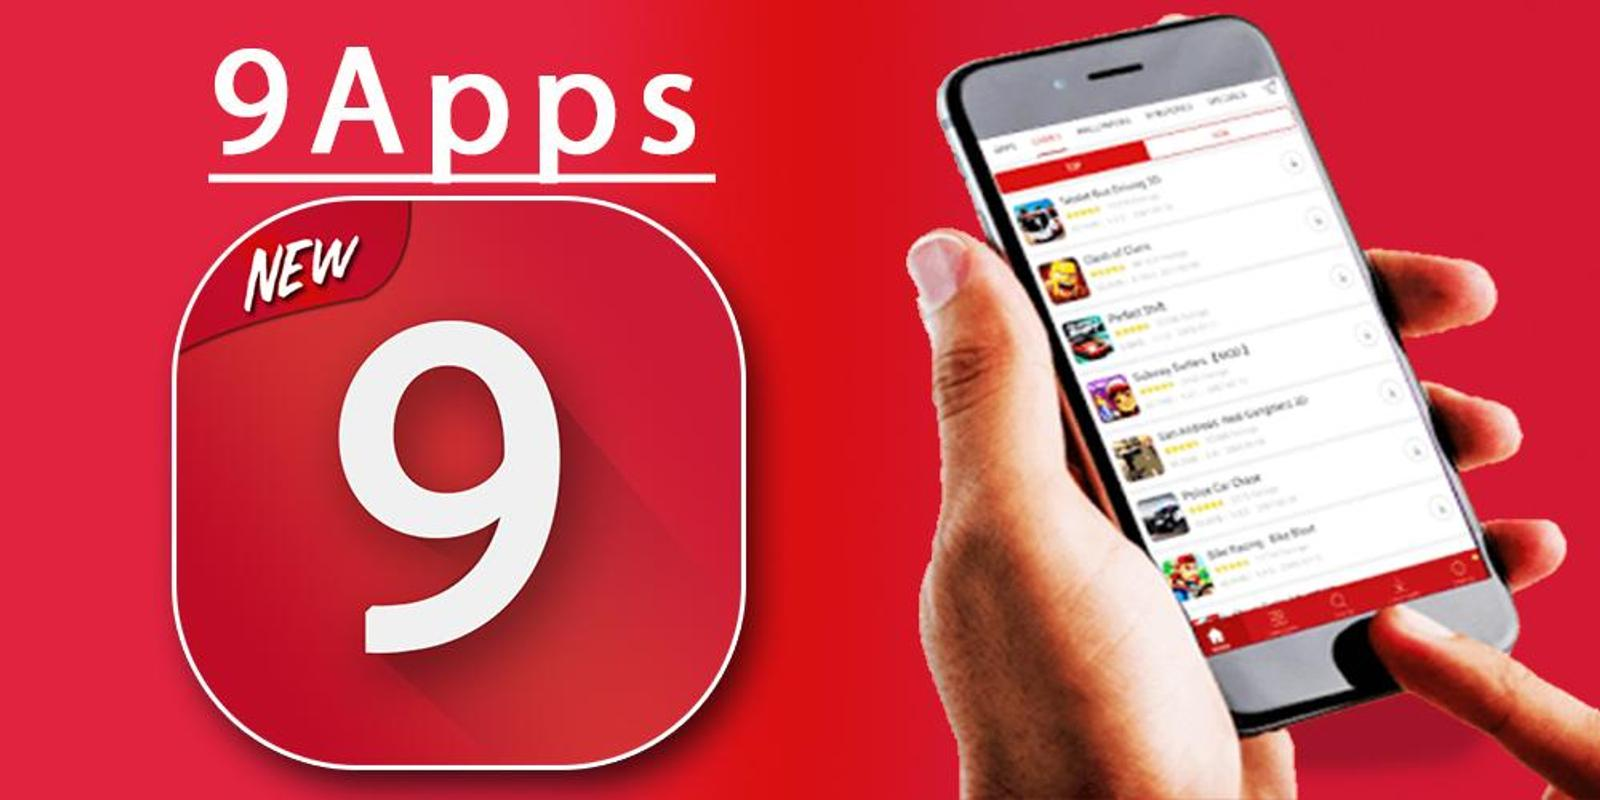 9apps – Suitable Destination for Awesome Apps